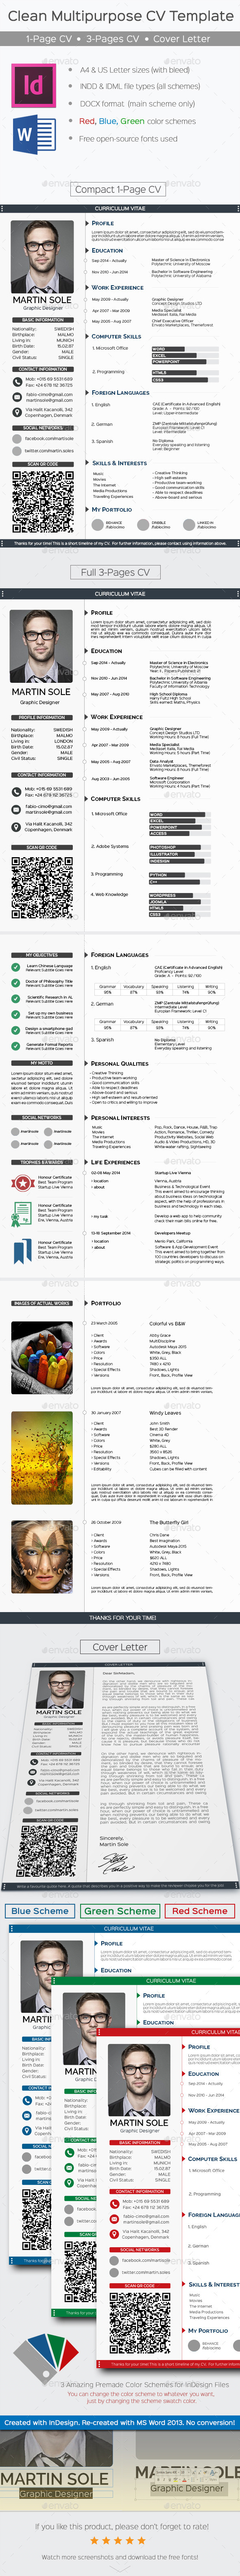 Clean Multipurpose CV Template - Resumes Stationery